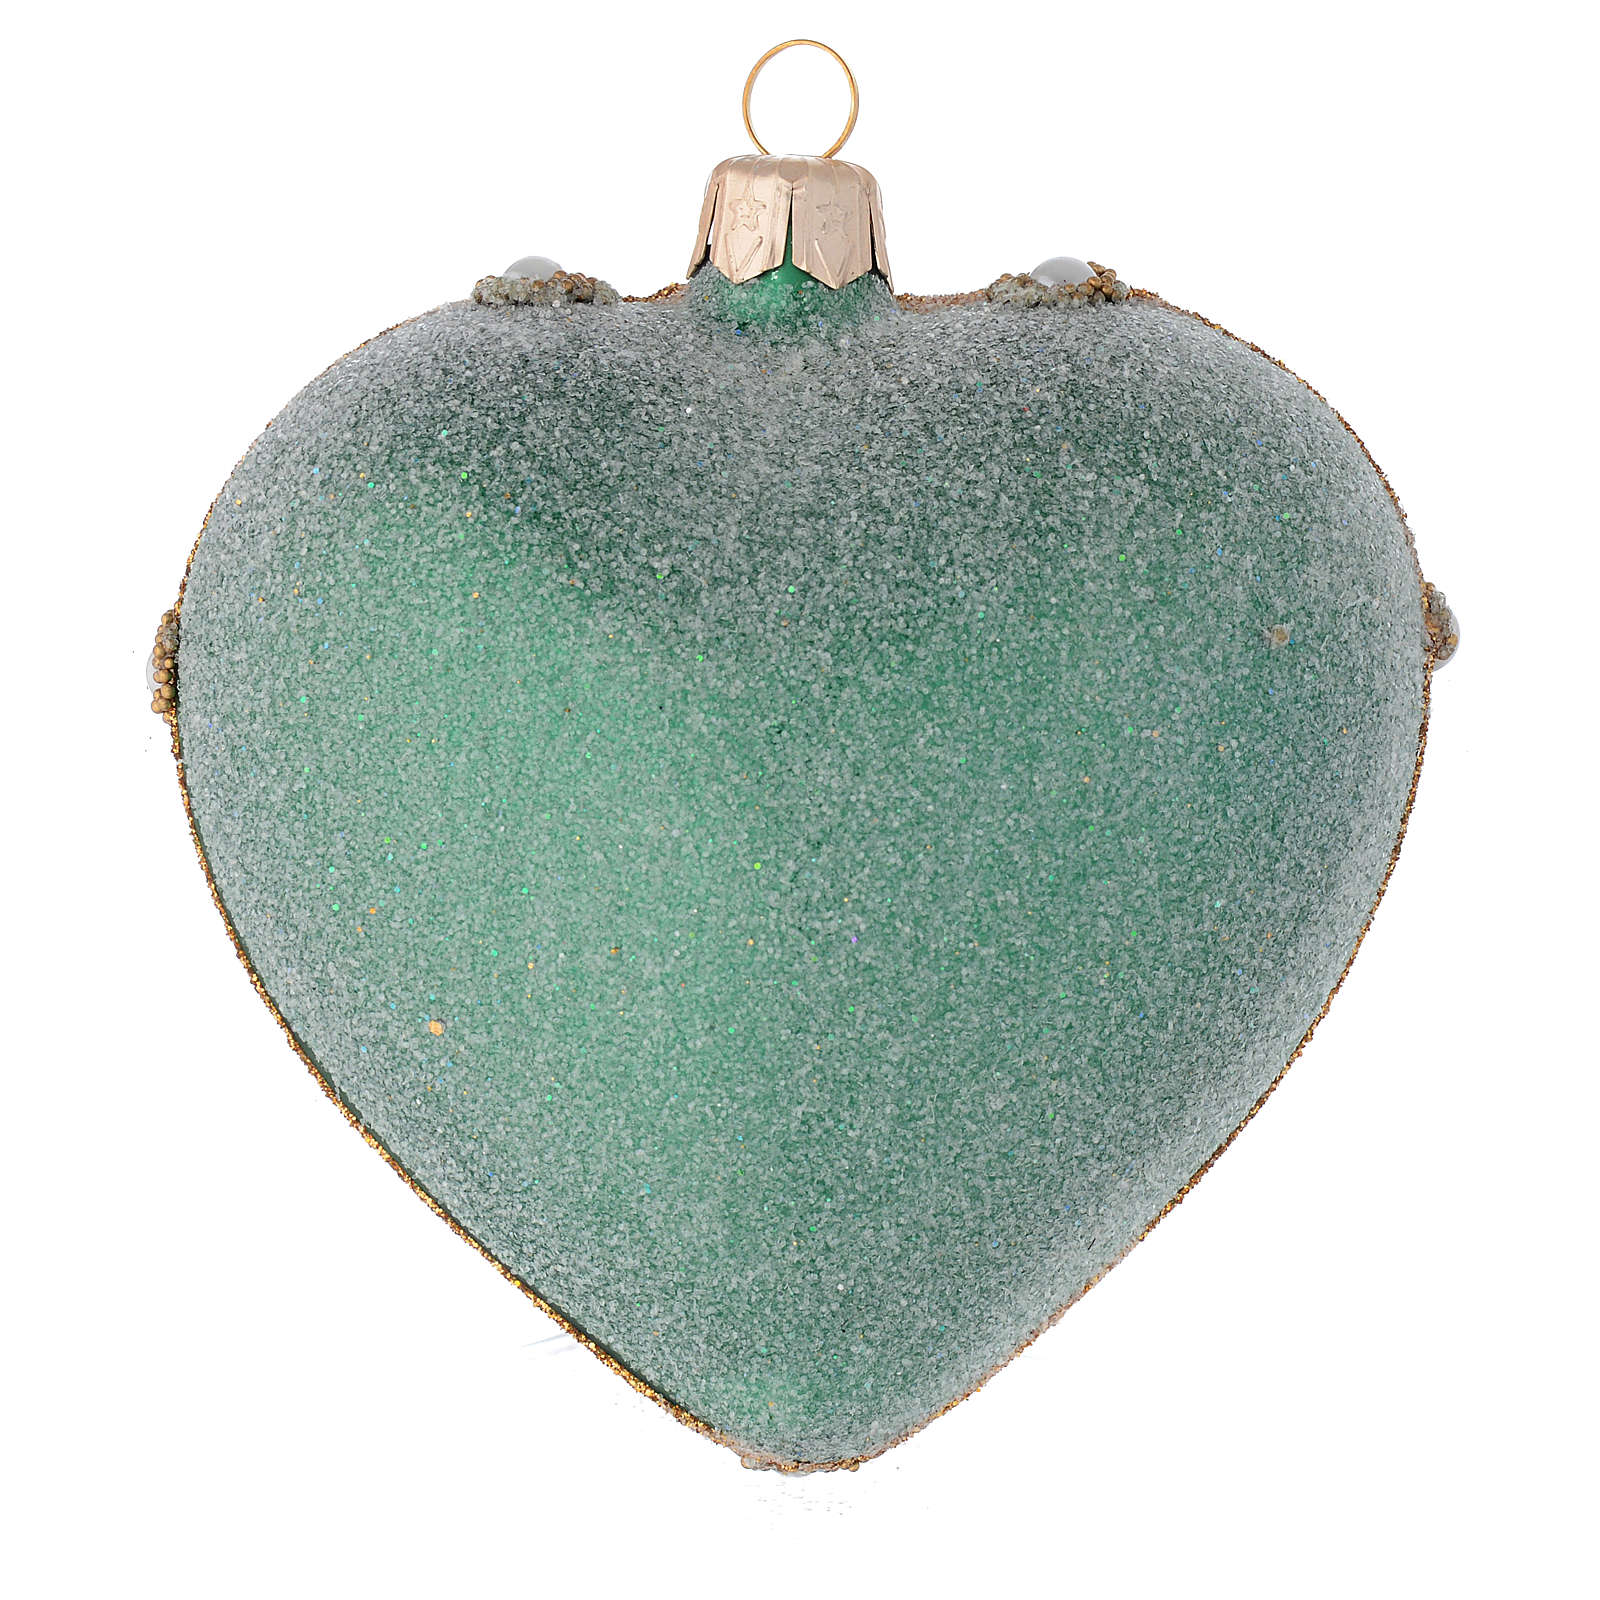 Heart Shaped Christmas bauble in green glass with gold decorations 100mm 4